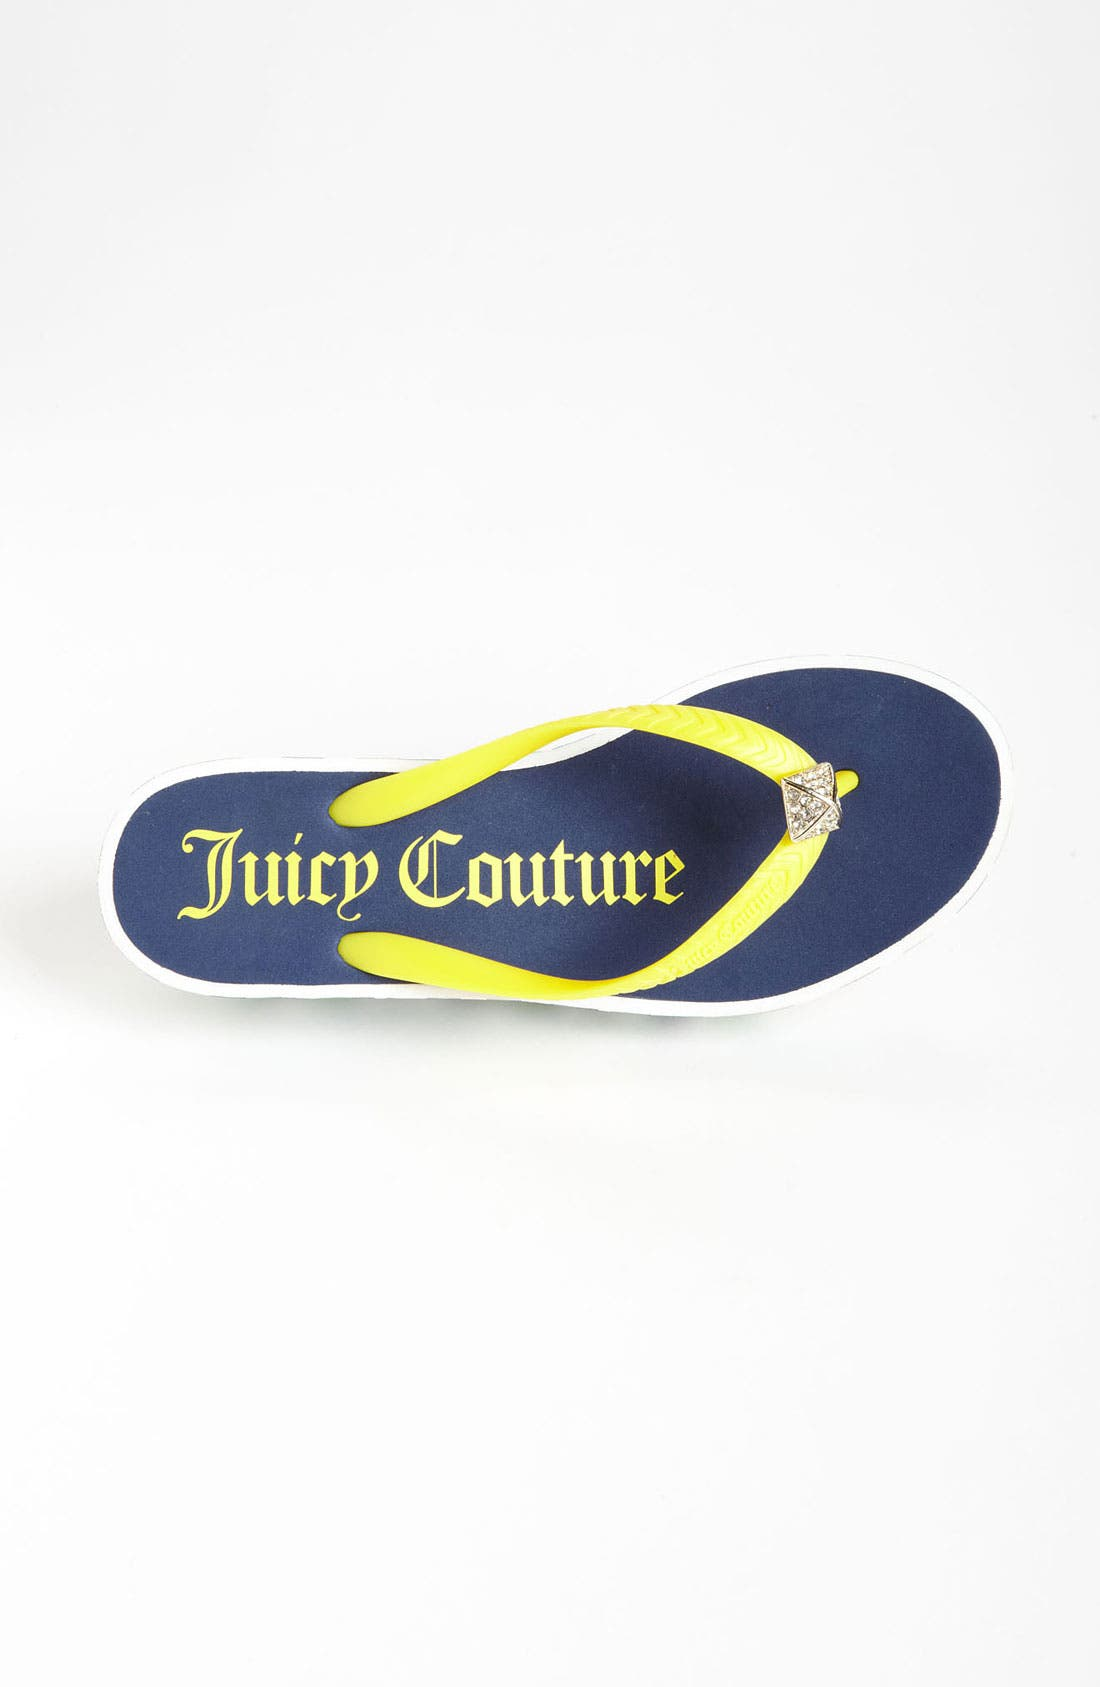 Alternate Image 3  - Juicy Couture 'Irie' Flip Flop